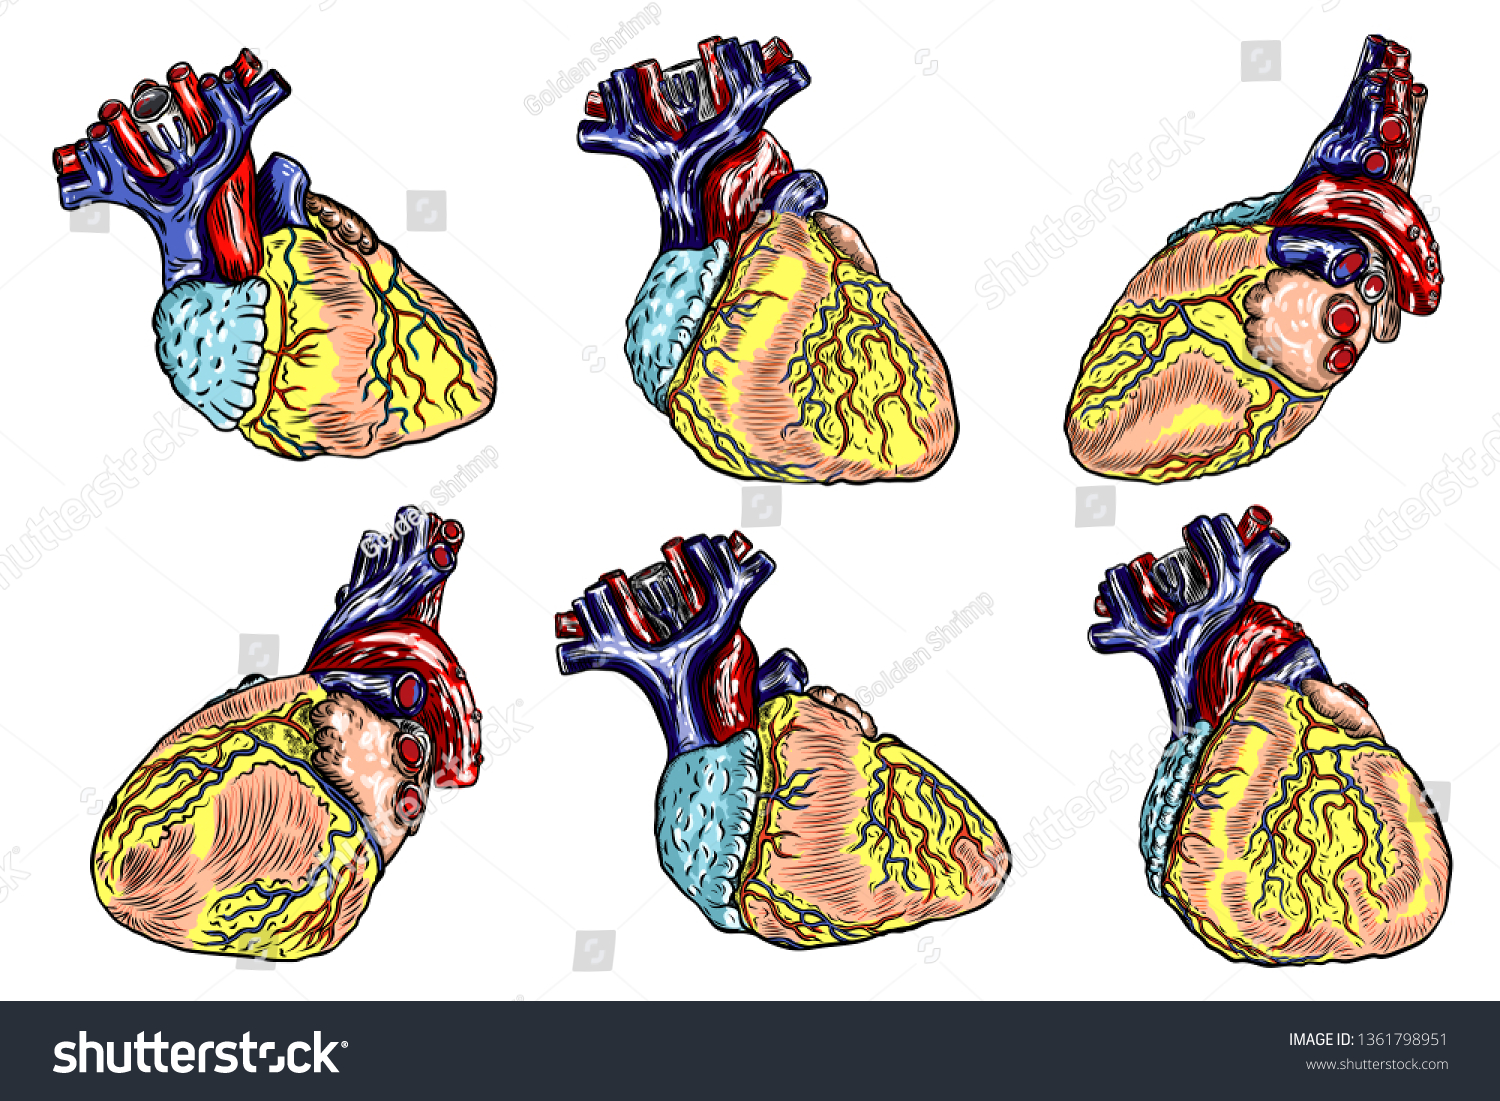 human body diagram tattoo set human anatomy heart black color stock vector  royalty free  set human anatomy heart black color